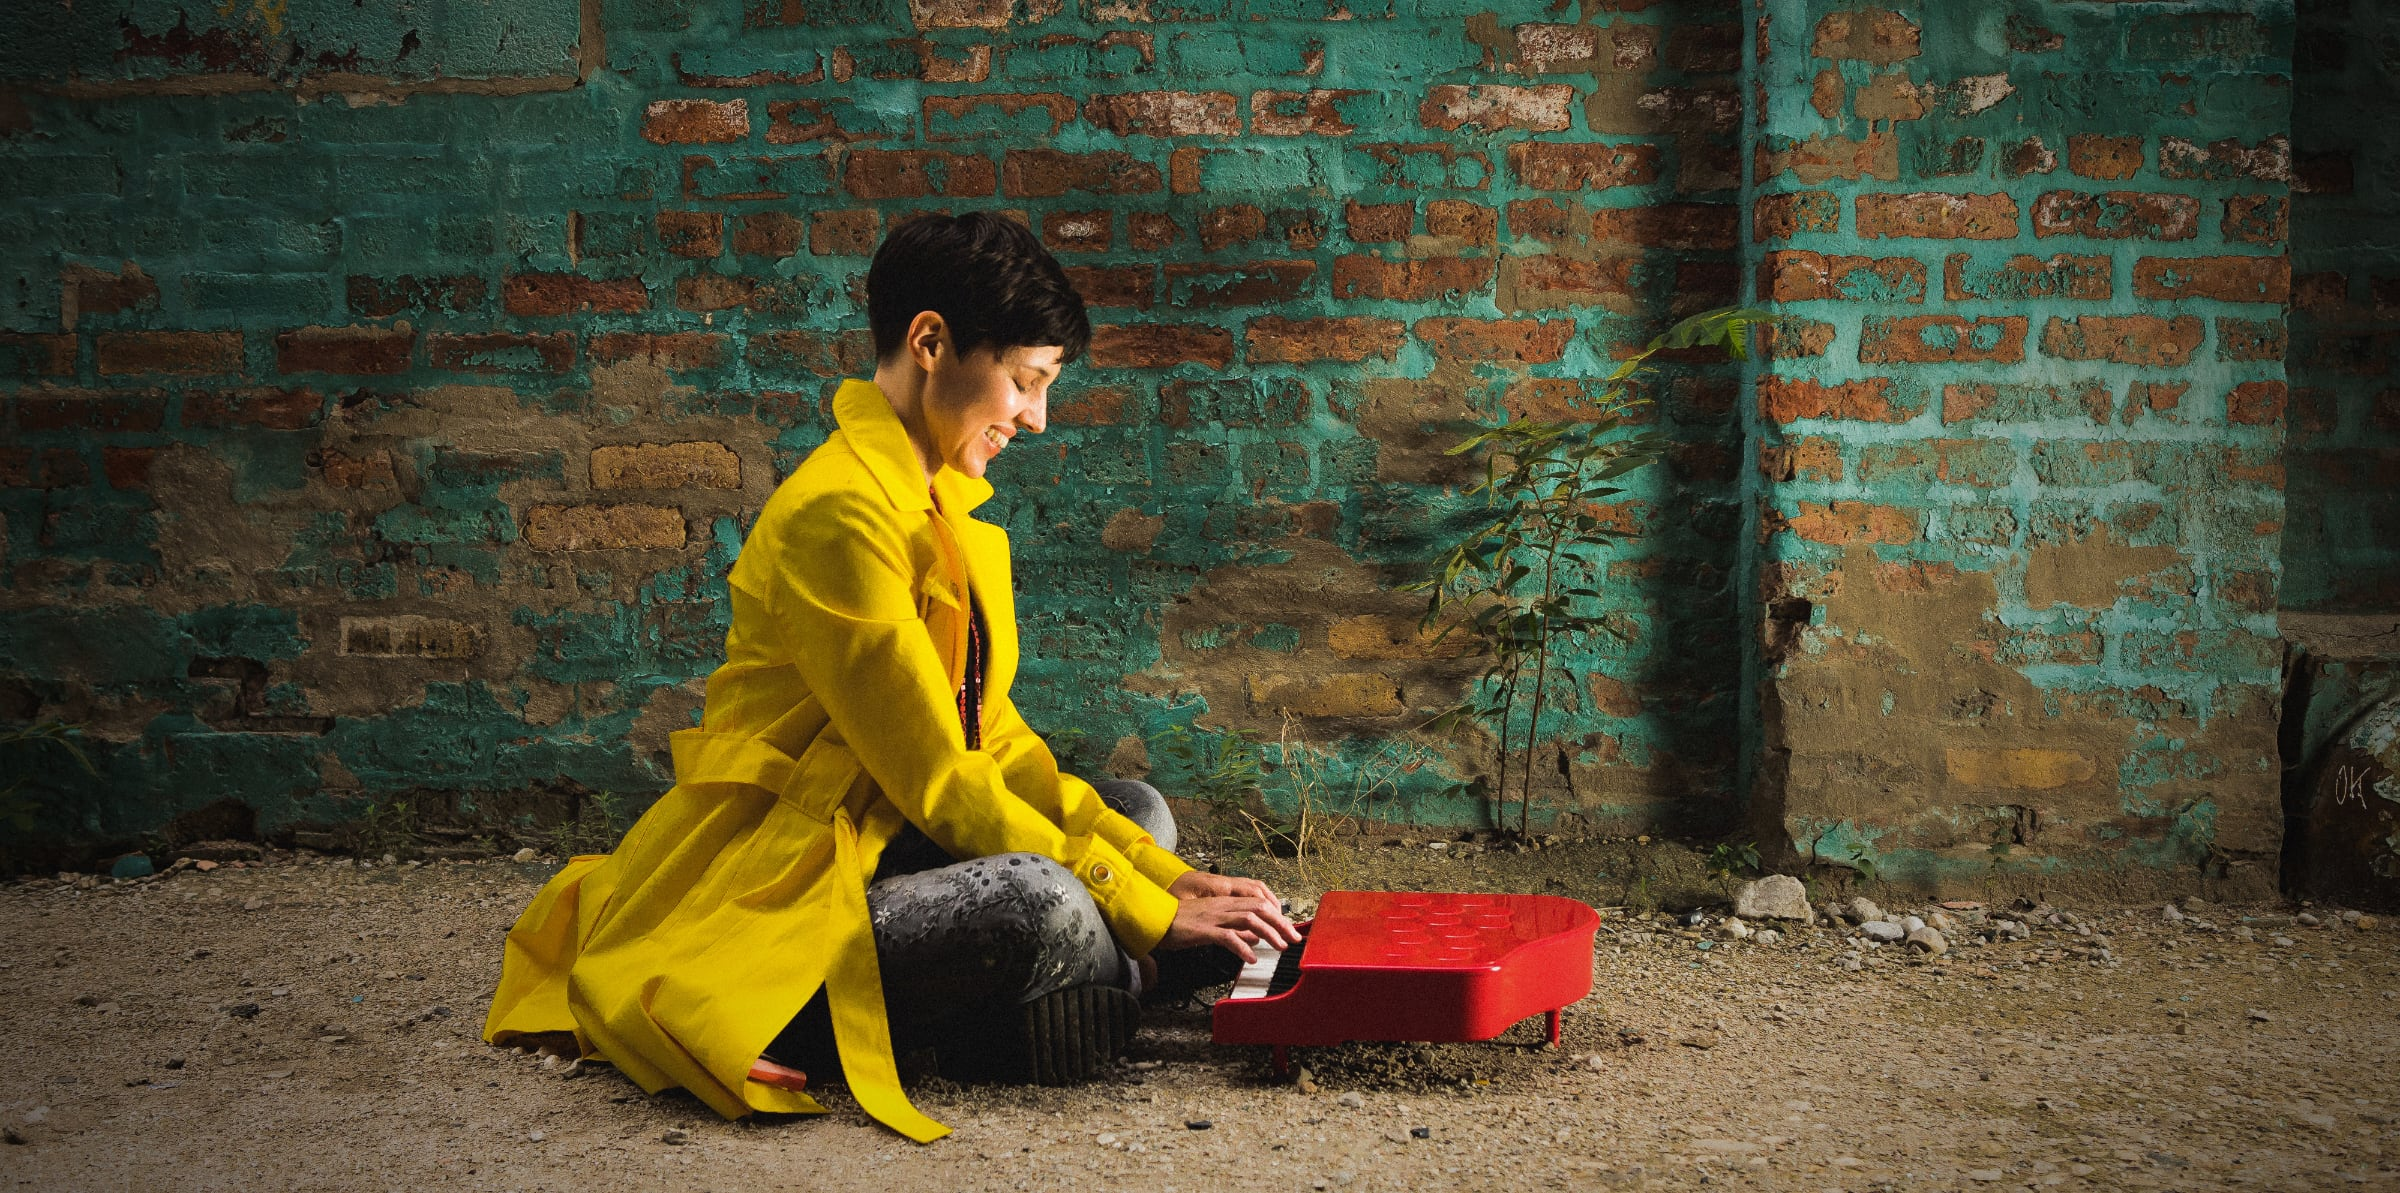 Diana Lawrence wearing a yellow coat, sitting at a red toy piano